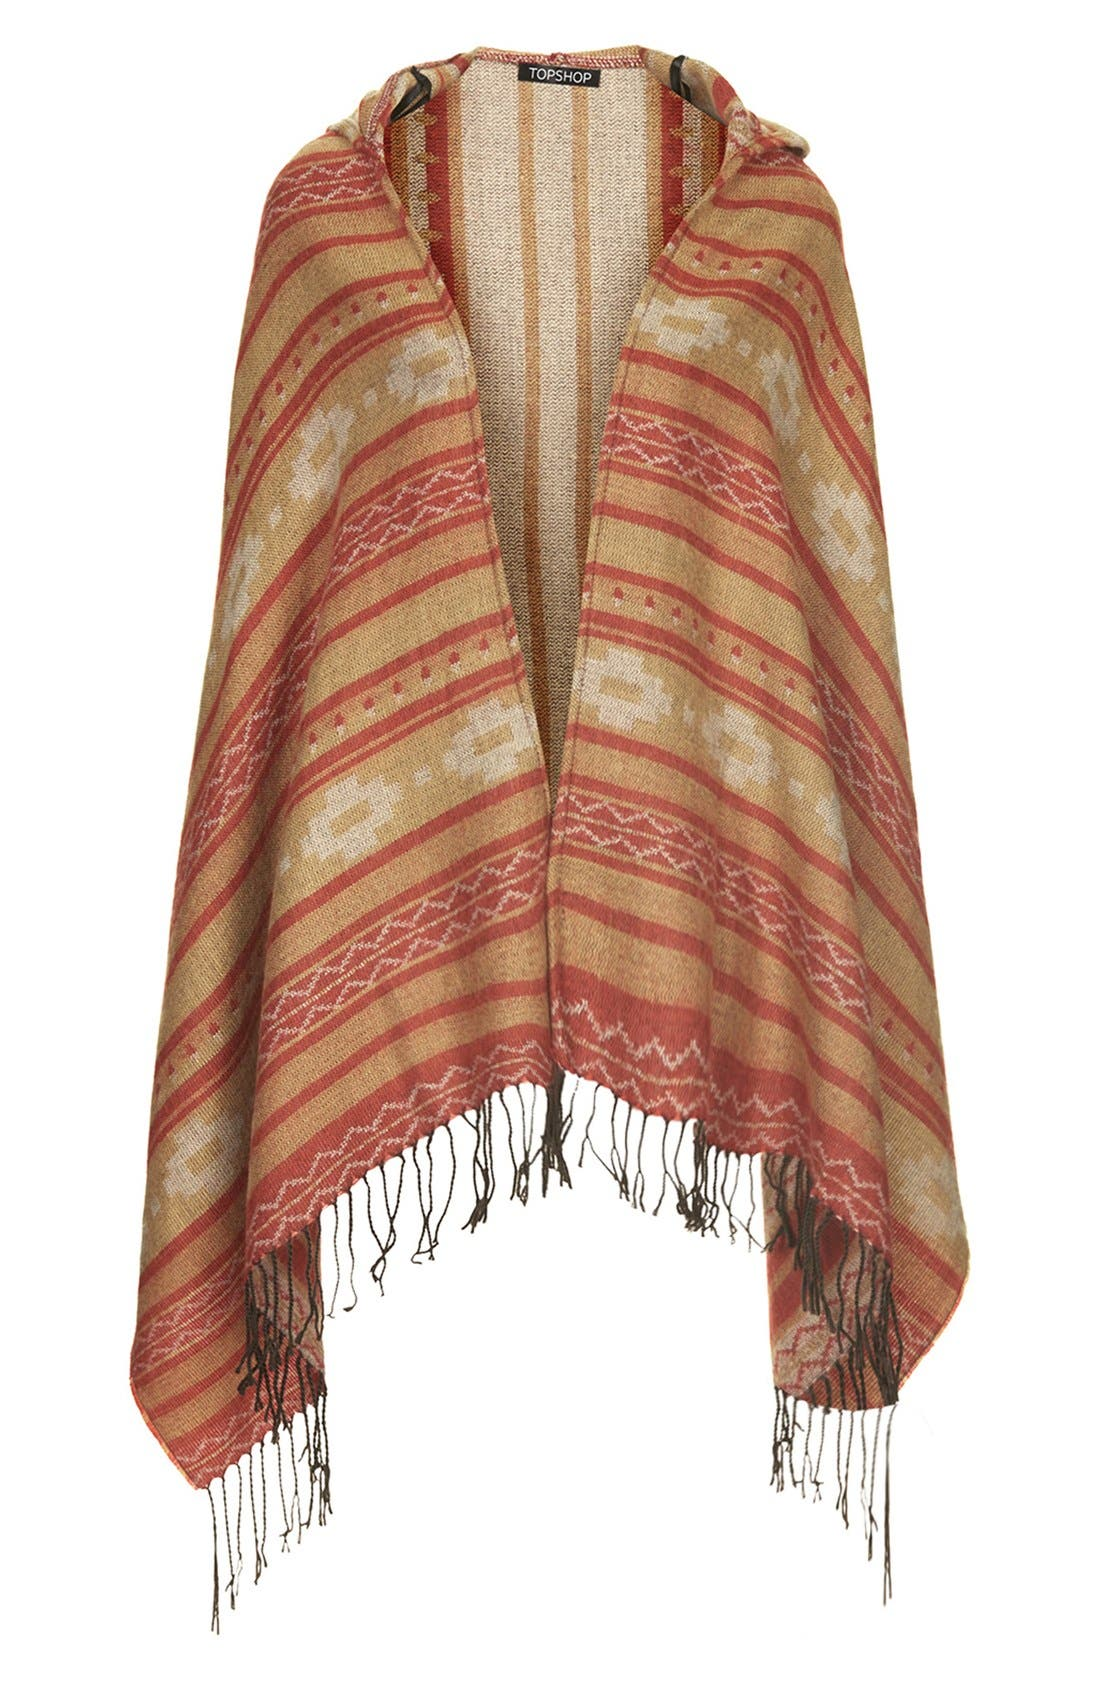 Alternate Image 1 Selected - Topshop Hooded Blanket Print Wrap